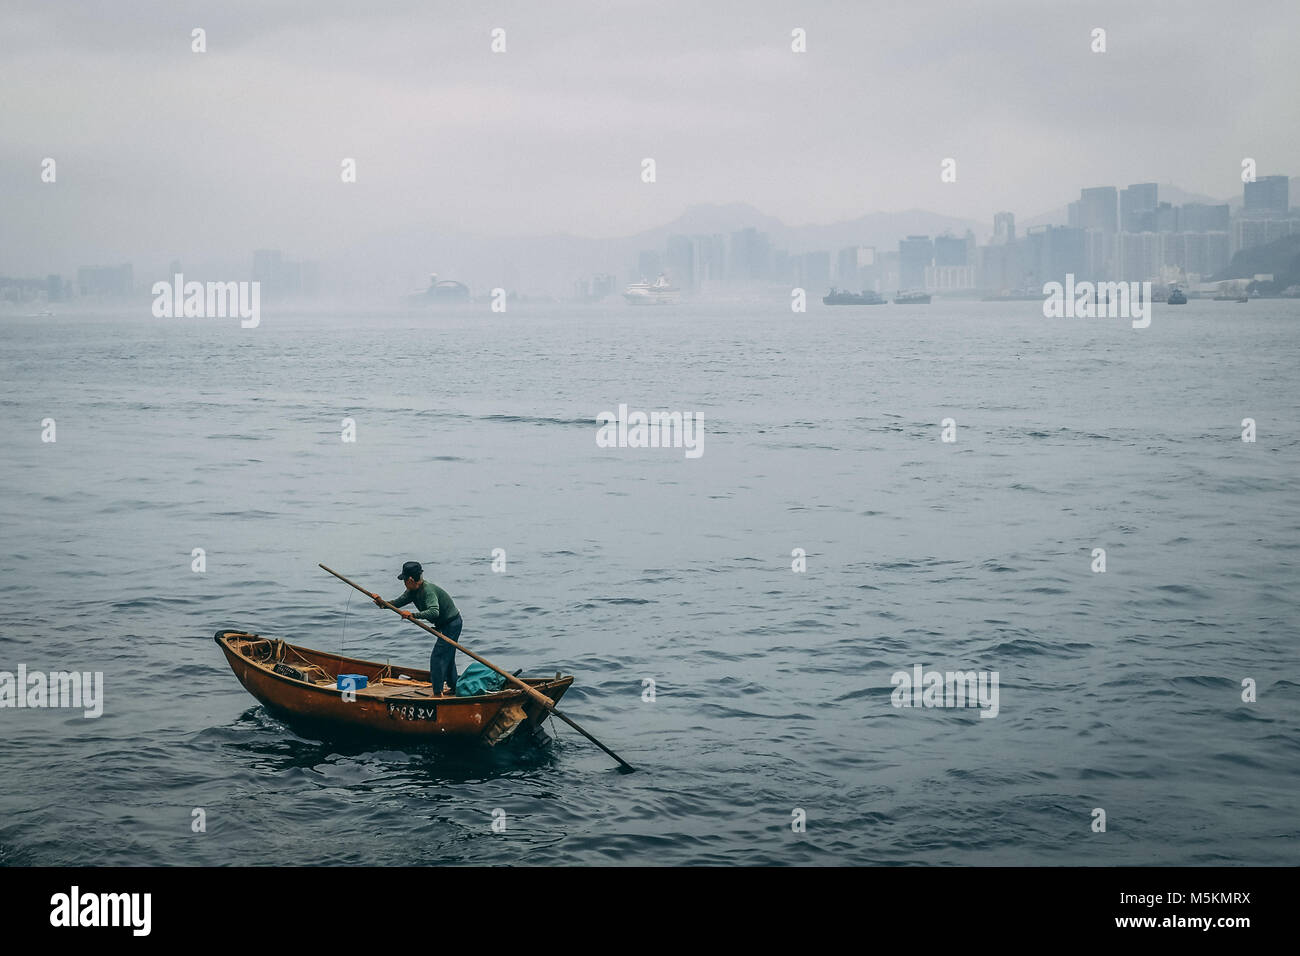 A Lone Fisherman Is Fishing In Wooden Paddle Boat Hong Kong